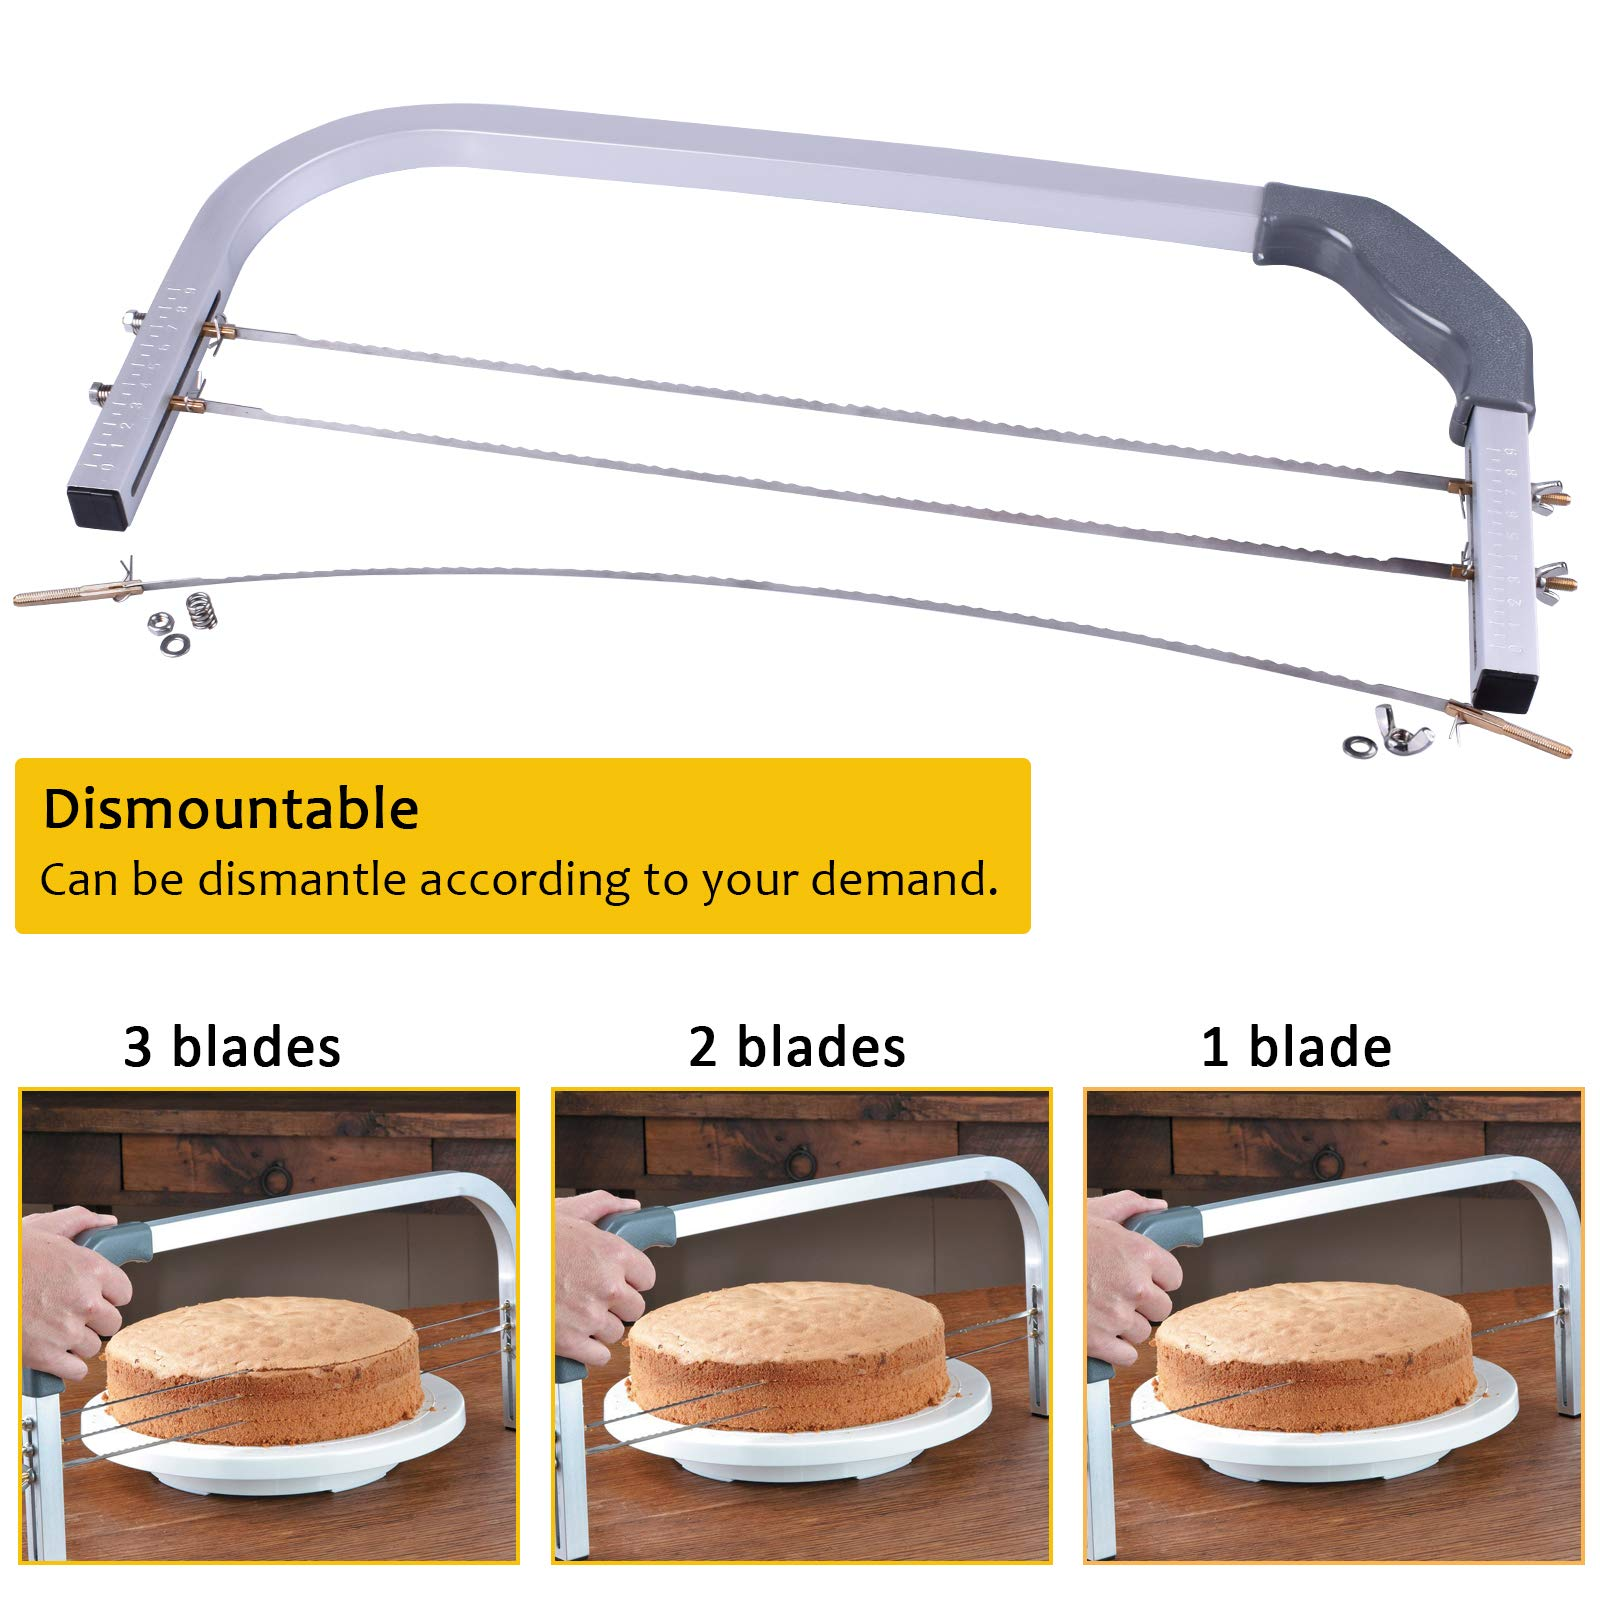 Bonviee Adjustable Cake Leveler Professional Layer Cake Slicer Cutter 3 Blades Stainless Steel Cut Saw 18\